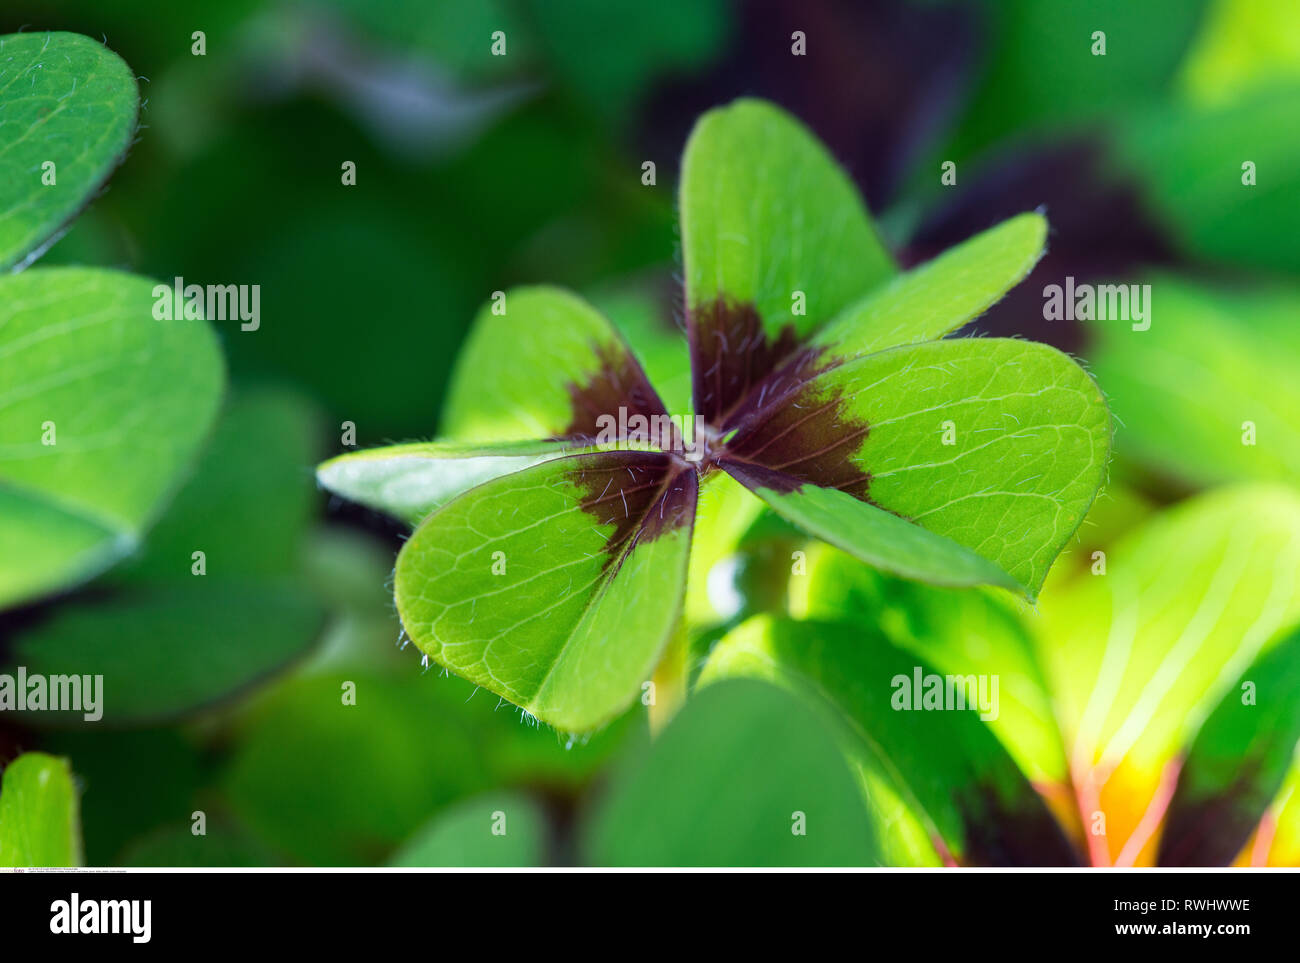 botany, lucky clover, Caution! For Greetingcard-Use / Postcard-Use In German Speaking Countries Certain Restrictions May Apply Stock Photo